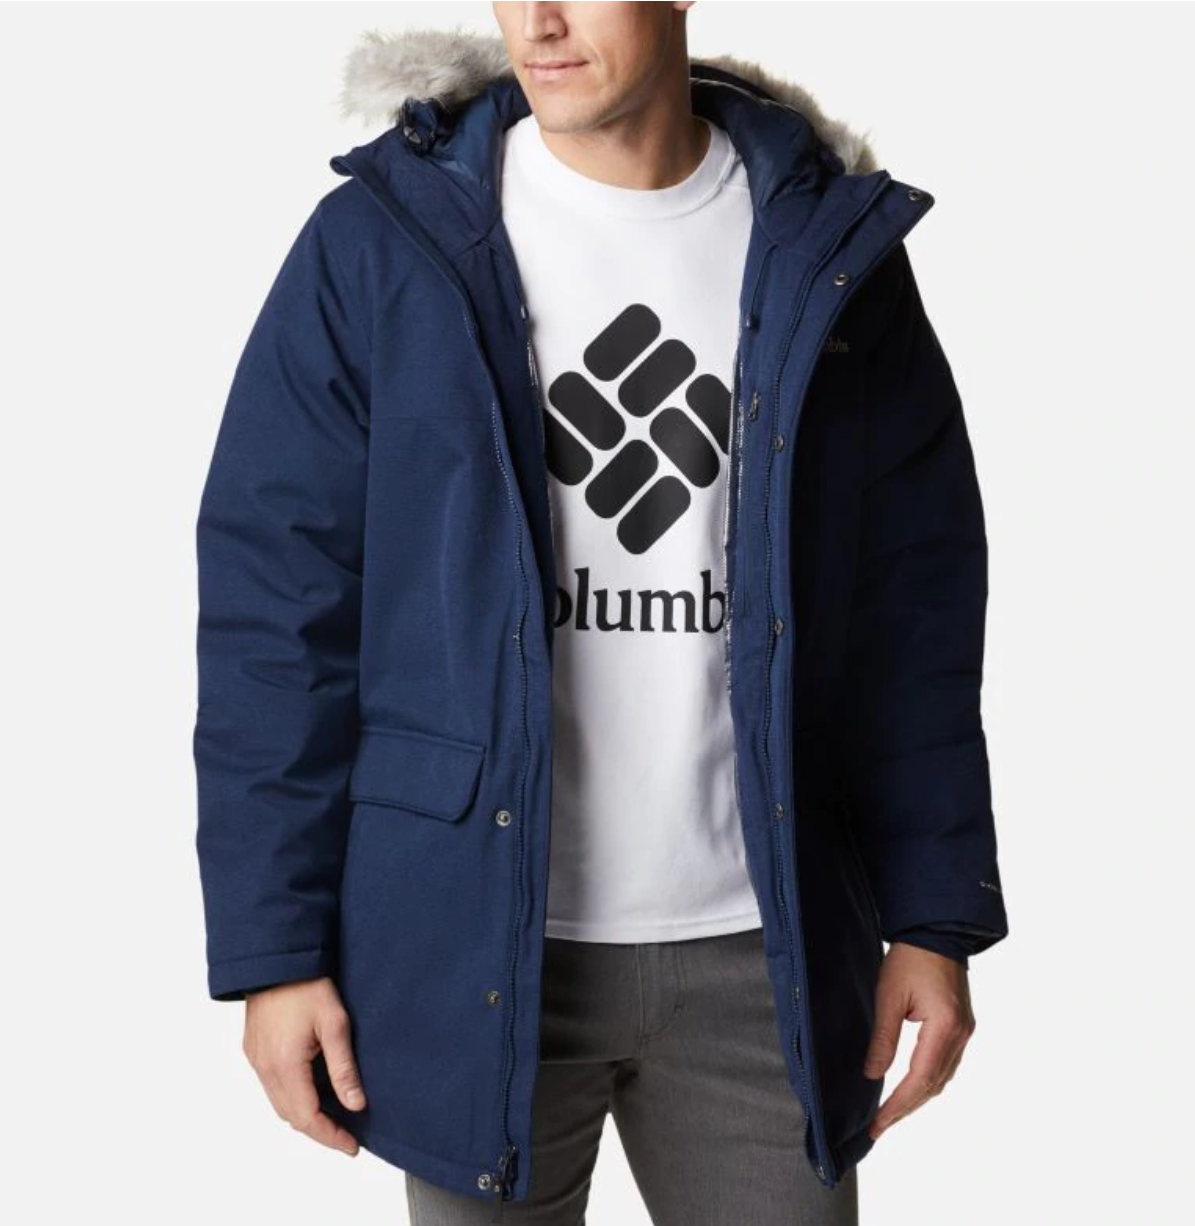 Columbia: Extra 25% off Sitewide from FatCoupon only